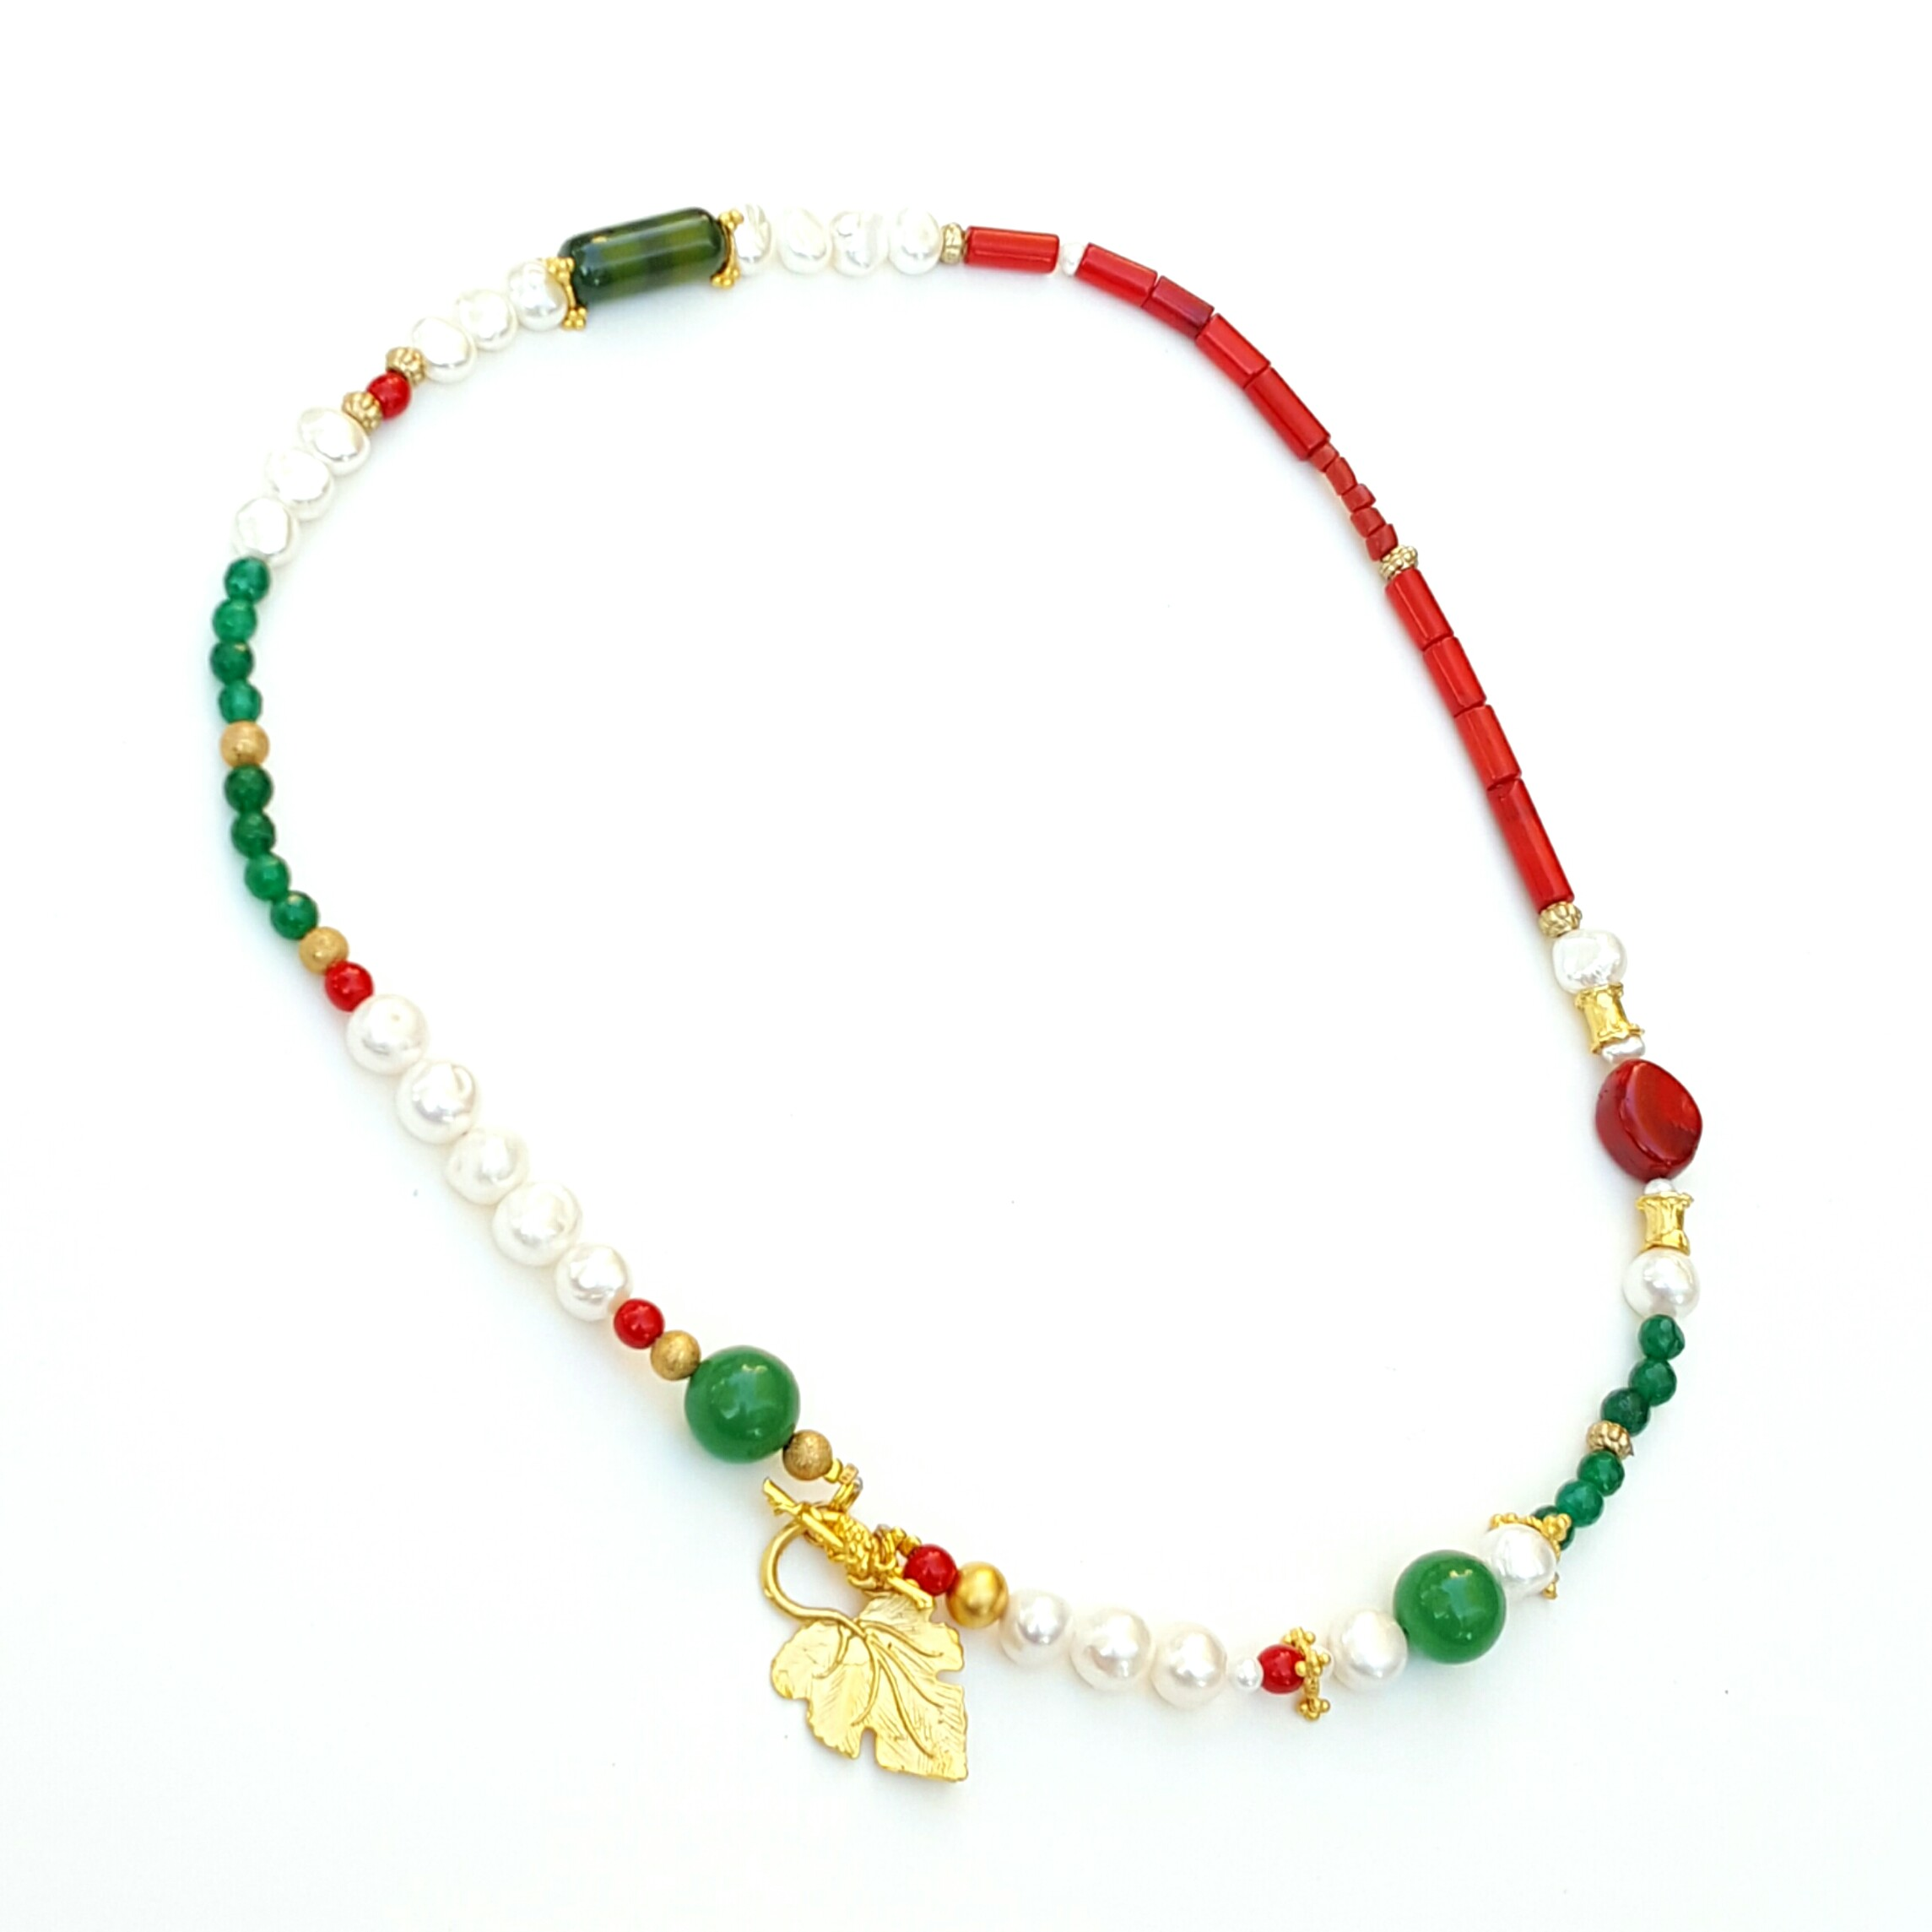 image polished is inch necklace jay kenneth resin itm carved loading bead with jade gold lane